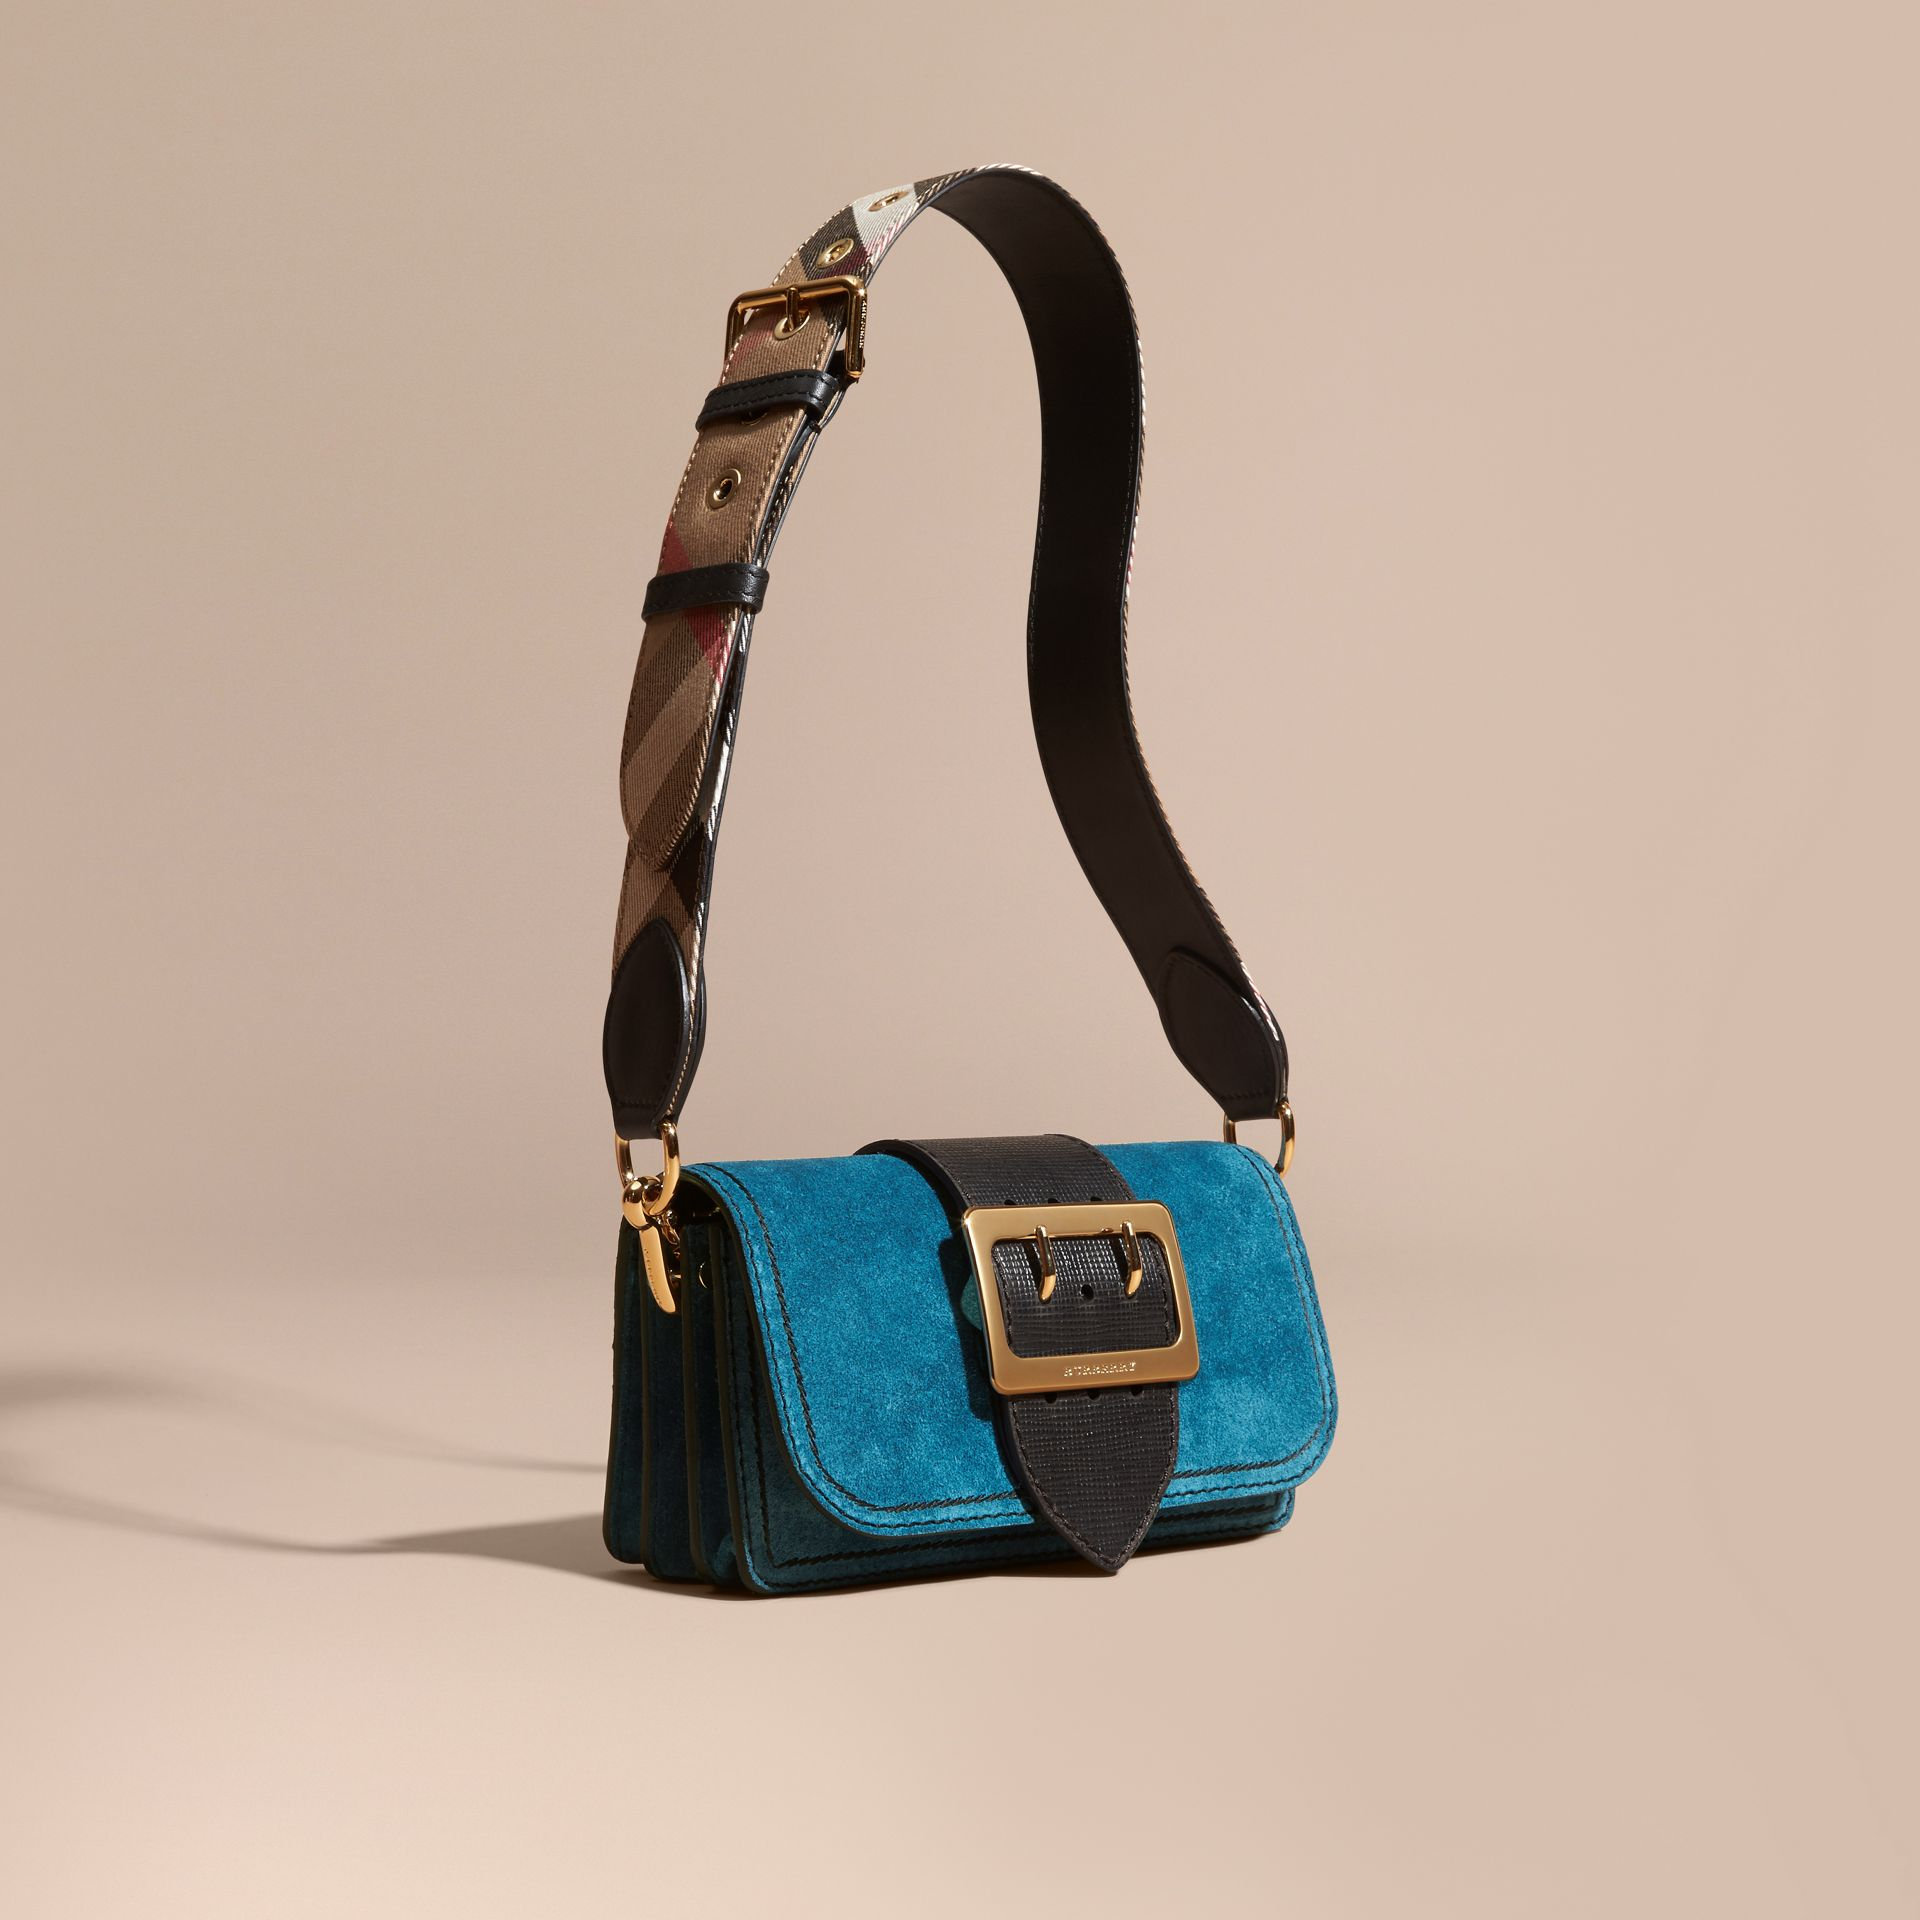 Peacock blue /black The Small Buckle Bag in Suede with Topstitching Peacock Blue /black - gallery image 1